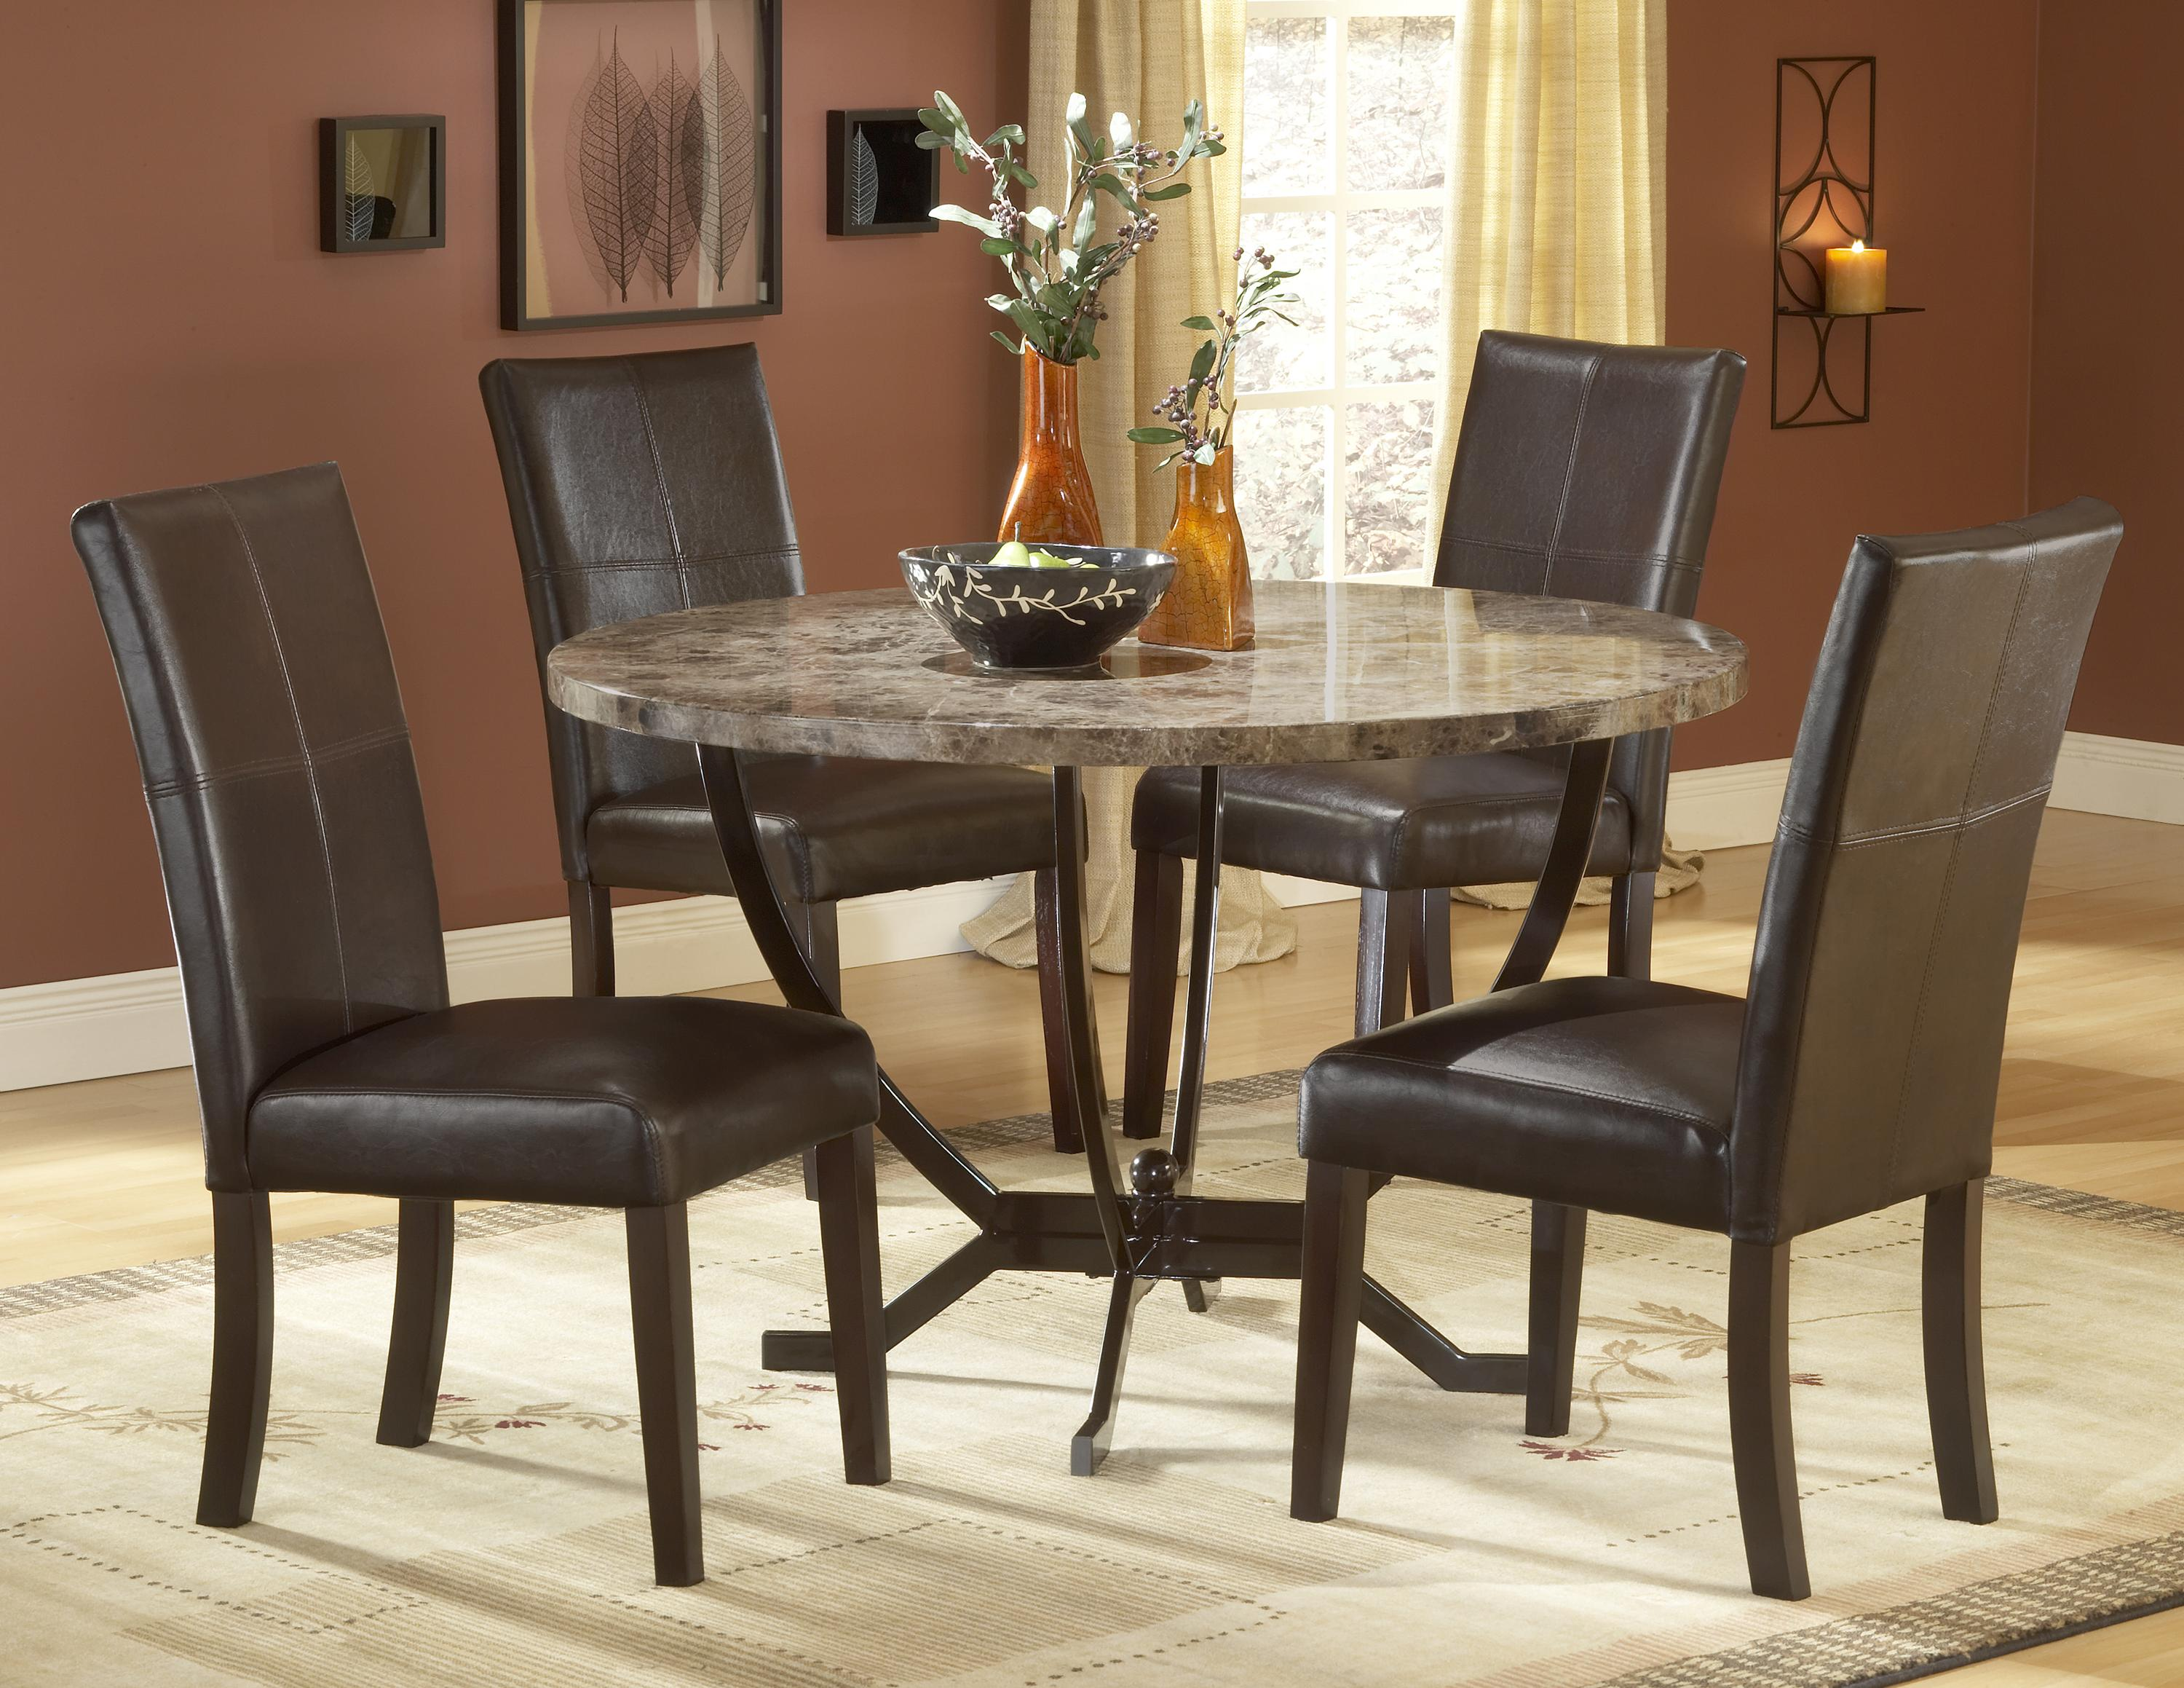 Small dinette set design homesfeed for Dining set design